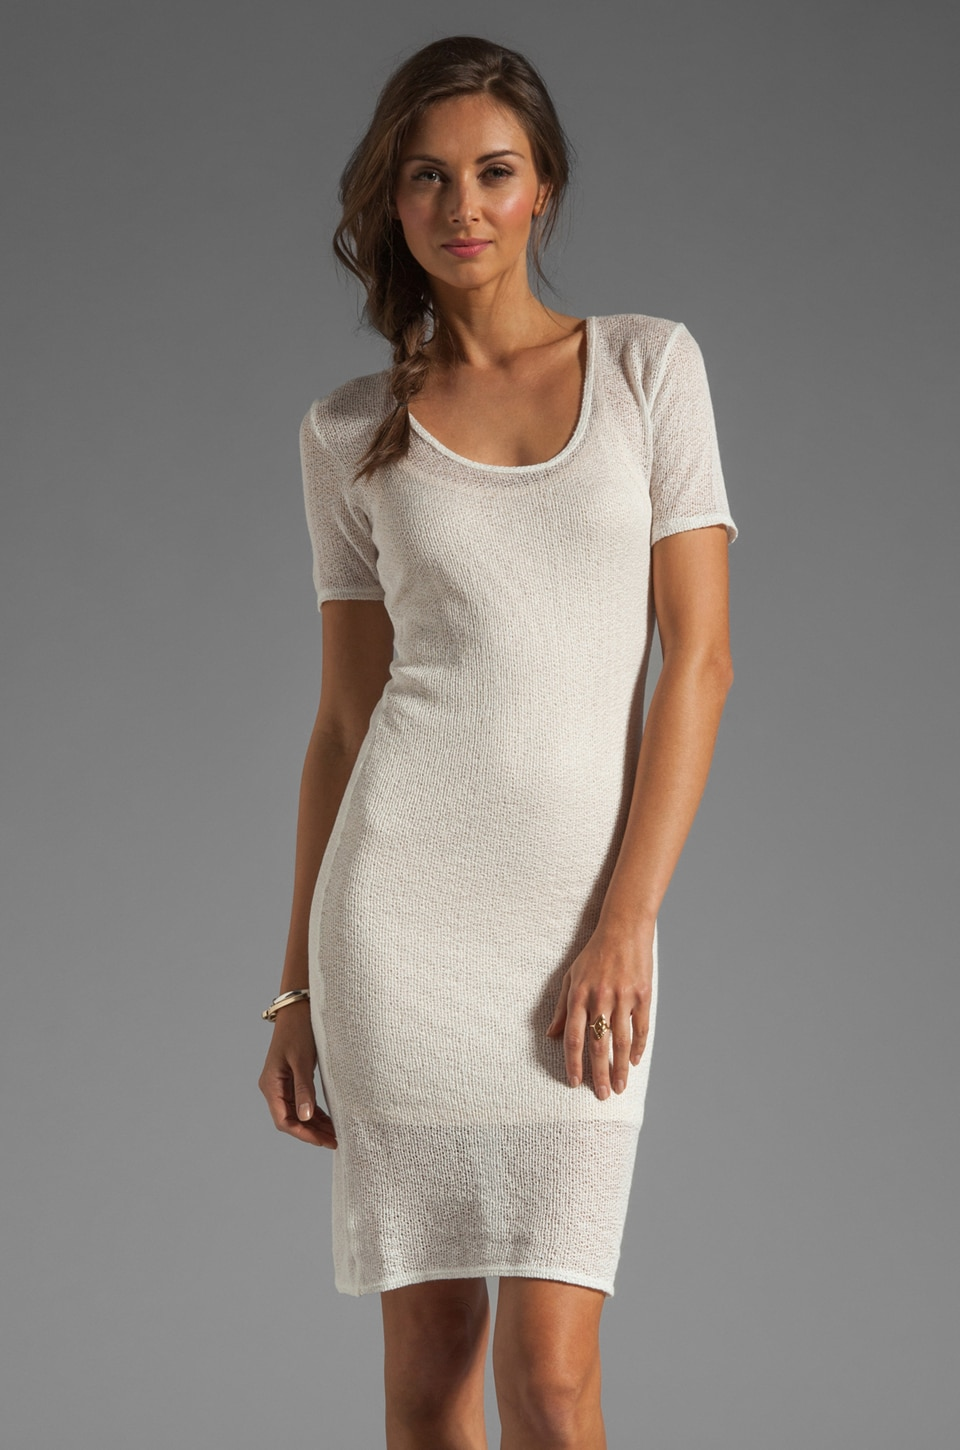 Nation LTD St. Tropez Sweater Seacliff Dress in Natural